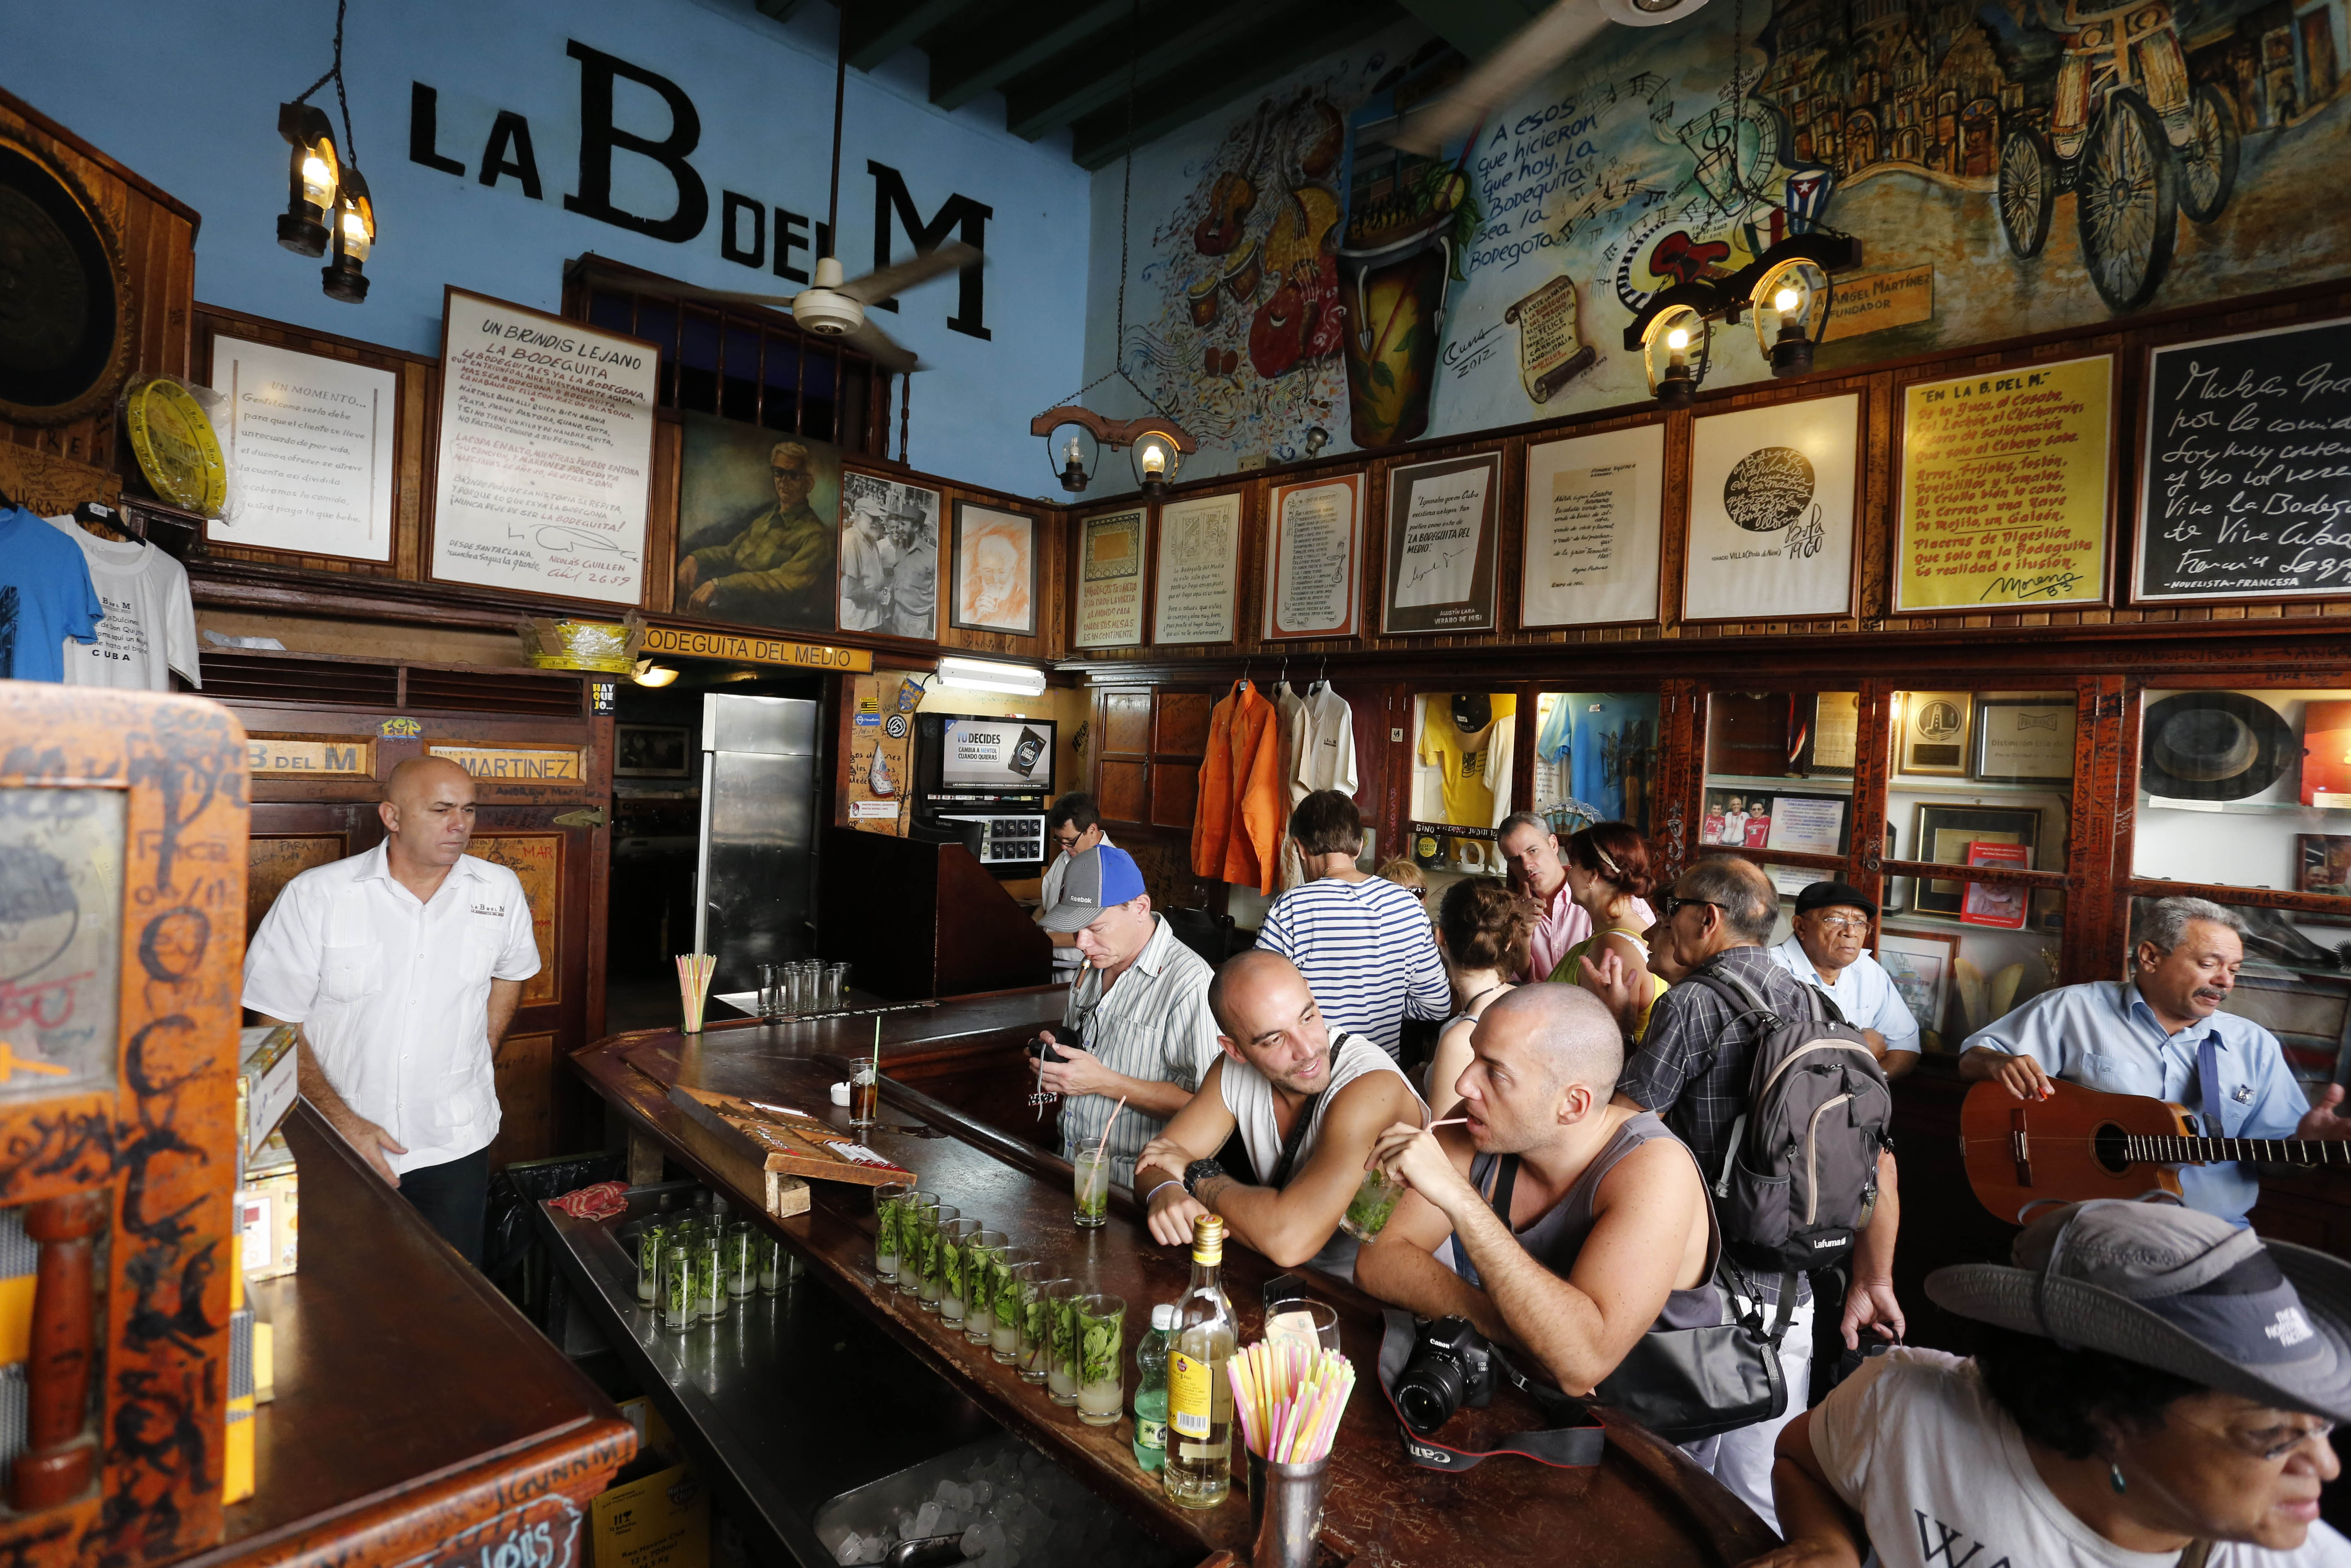 Local chef leads travelers on culinary tour of Cuba